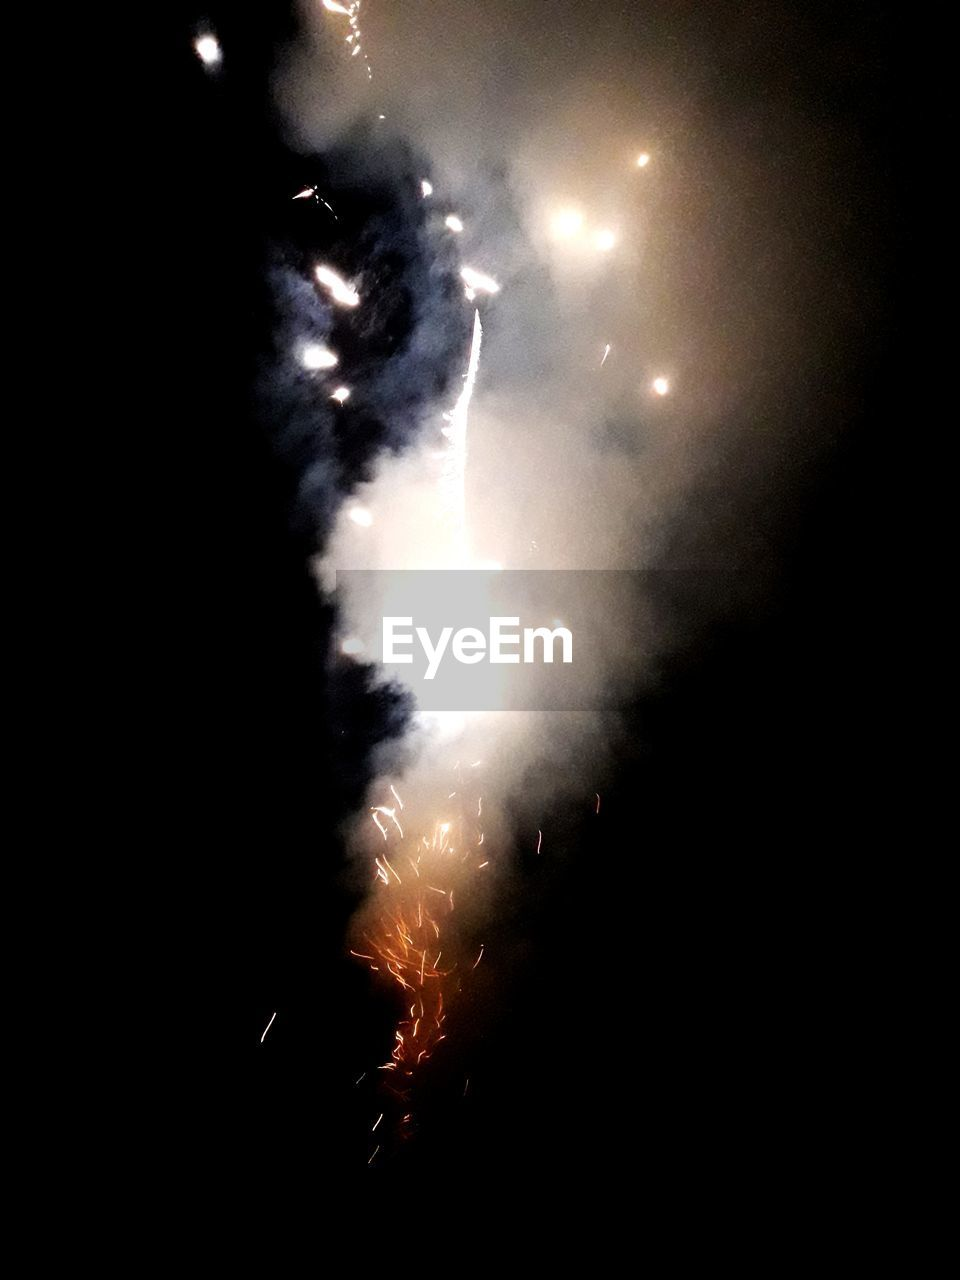 night, event, firework display, exploding, arts culture and entertainment, firework - man made object, smoke - physical structure, low angle view, celebration, illuminated, outdoors, sky, no people, long exposure, firework, burning, motion, nature, close-up